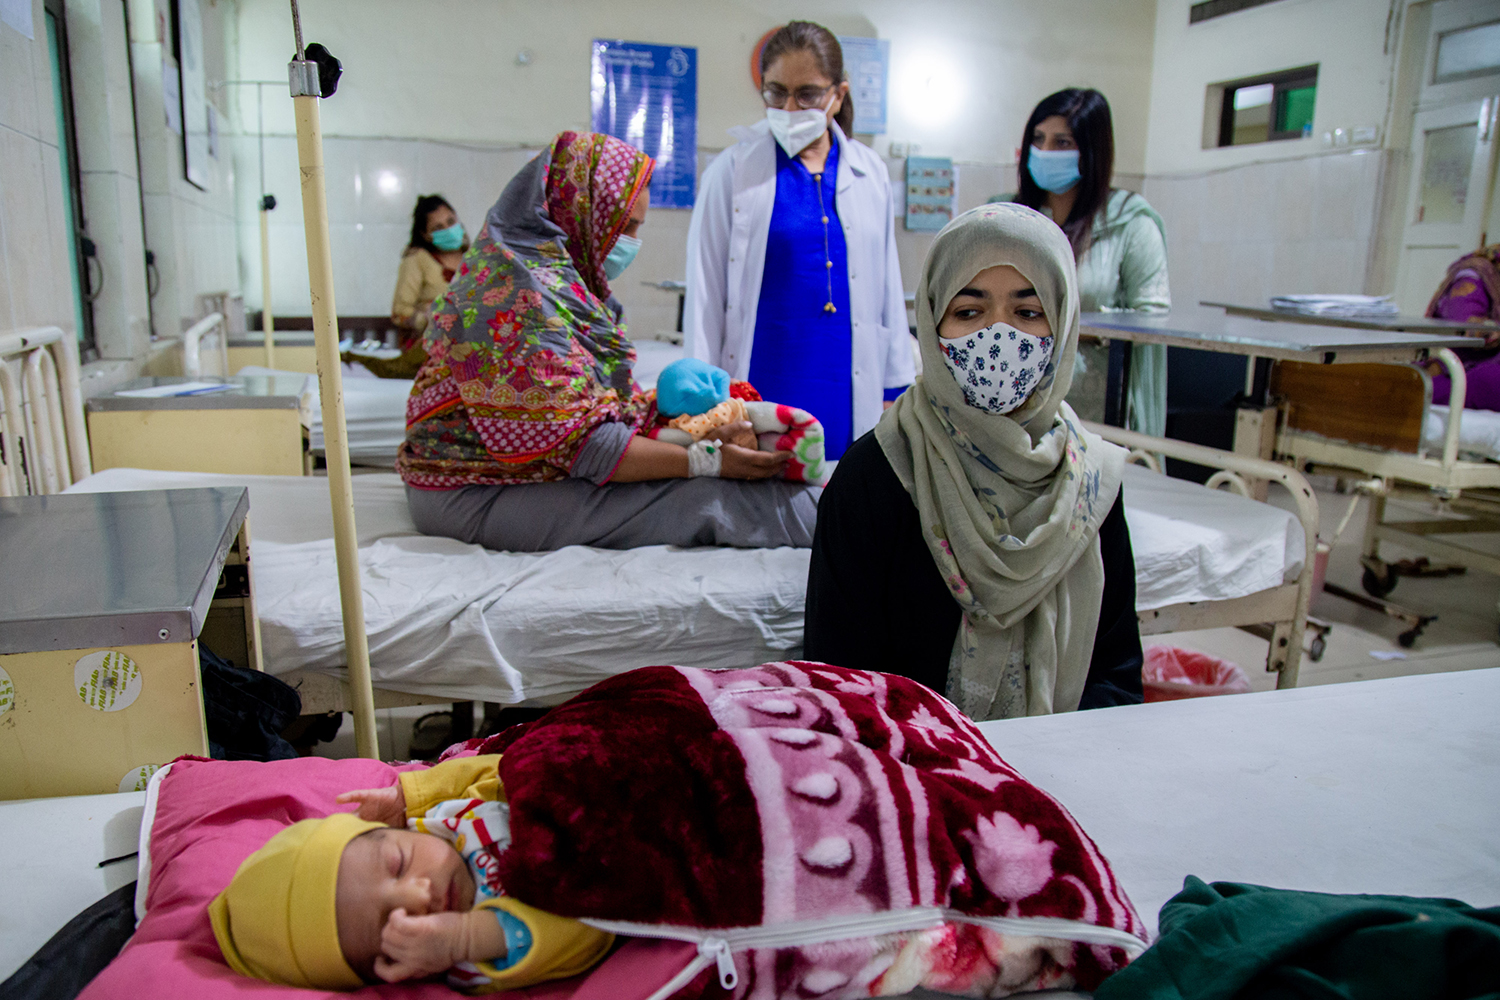 A woman sites with her baby at a health center in Lahore.